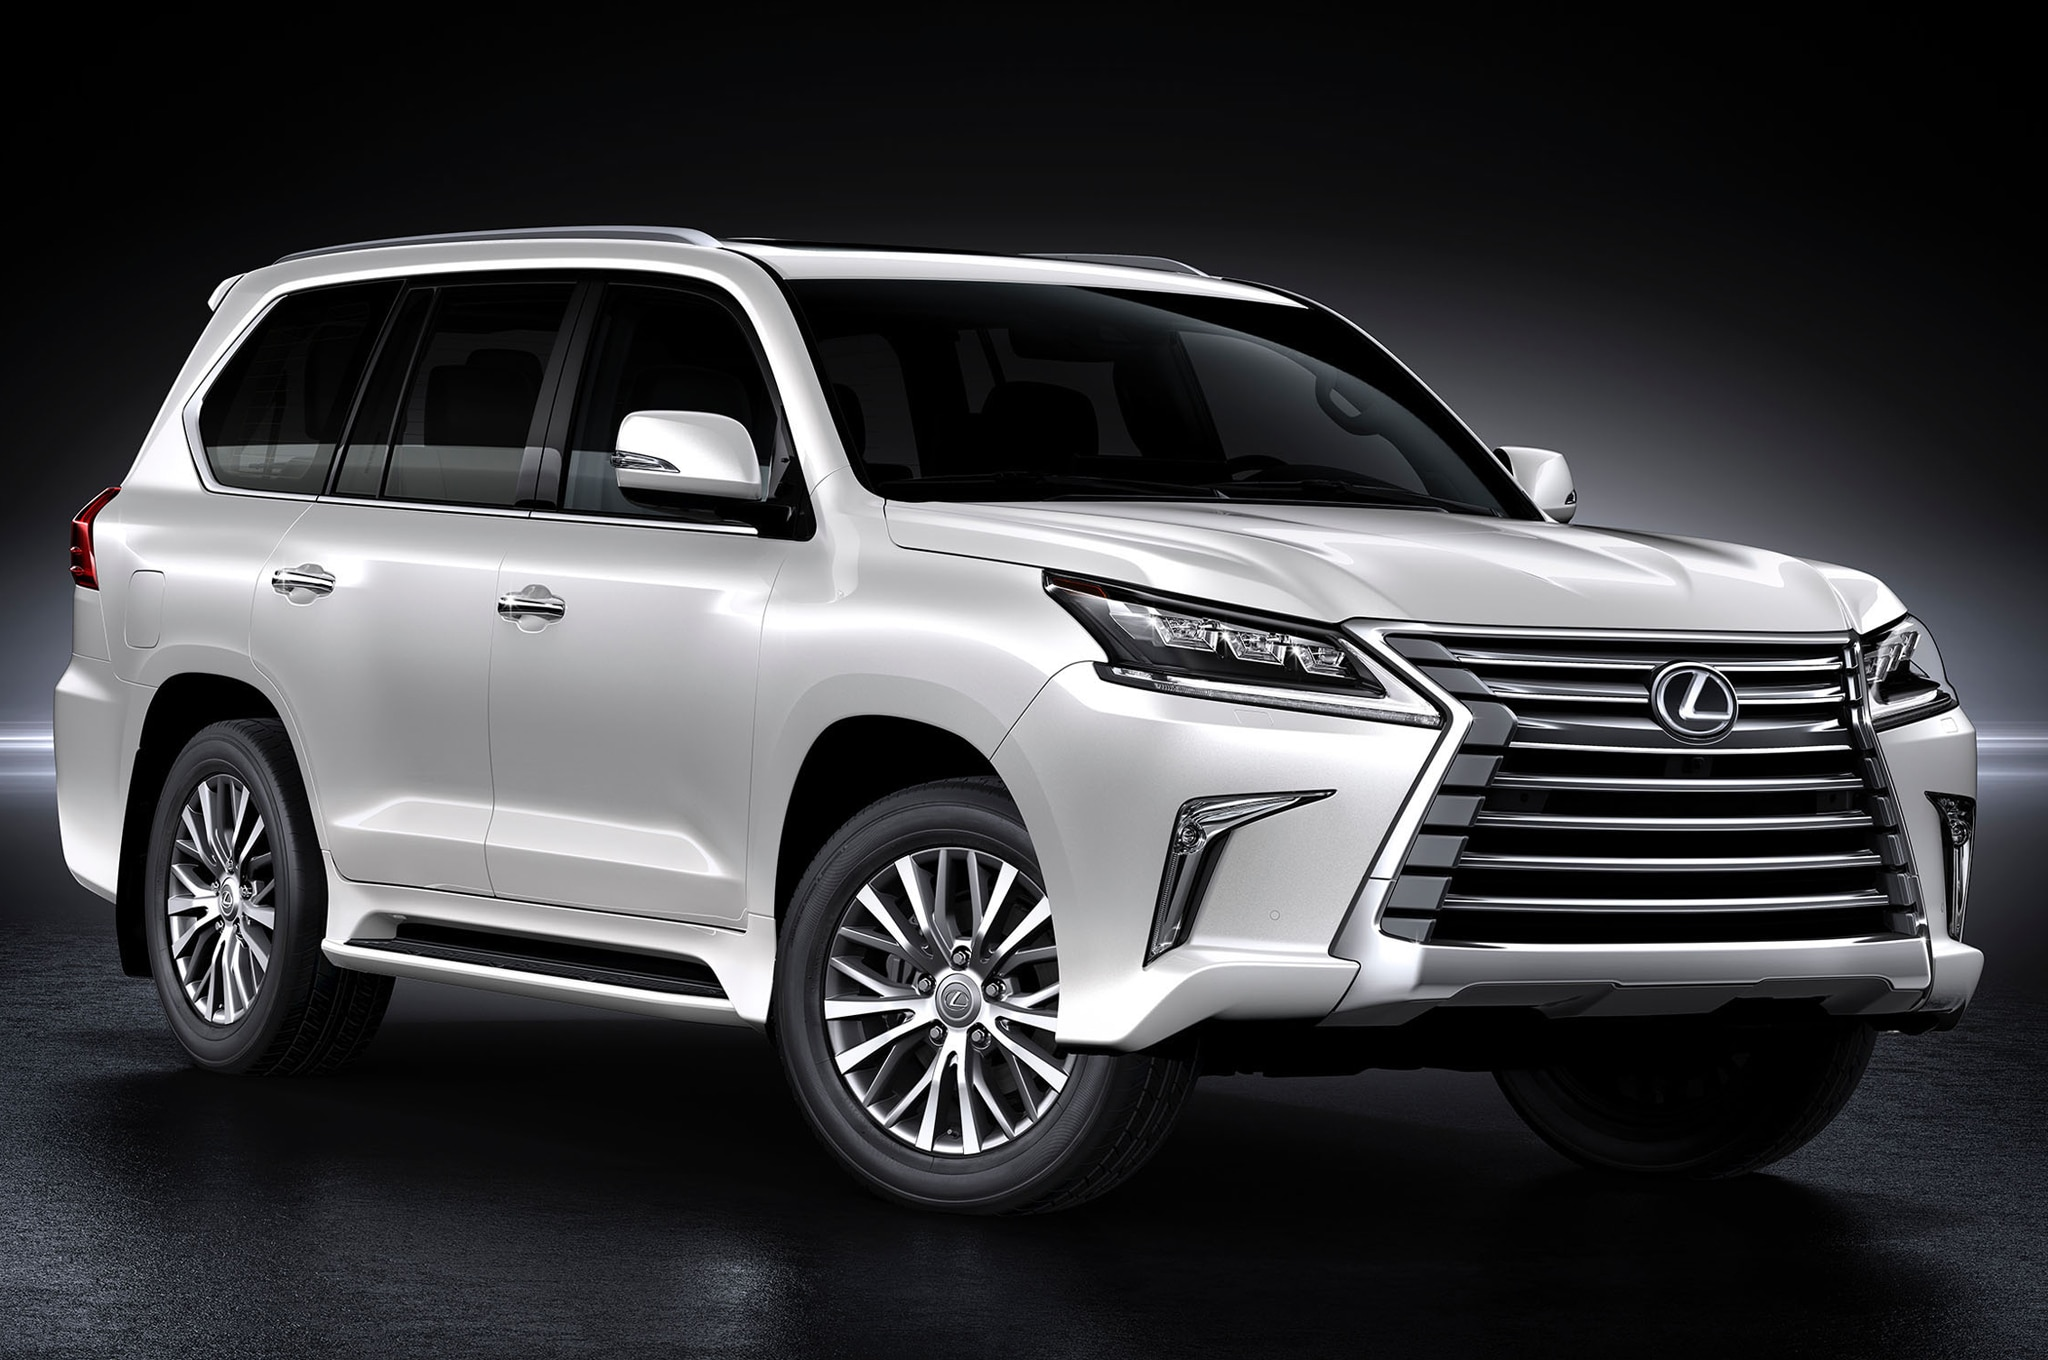 2016 Lexus LX570 Reviews and Rating | Motor Trend